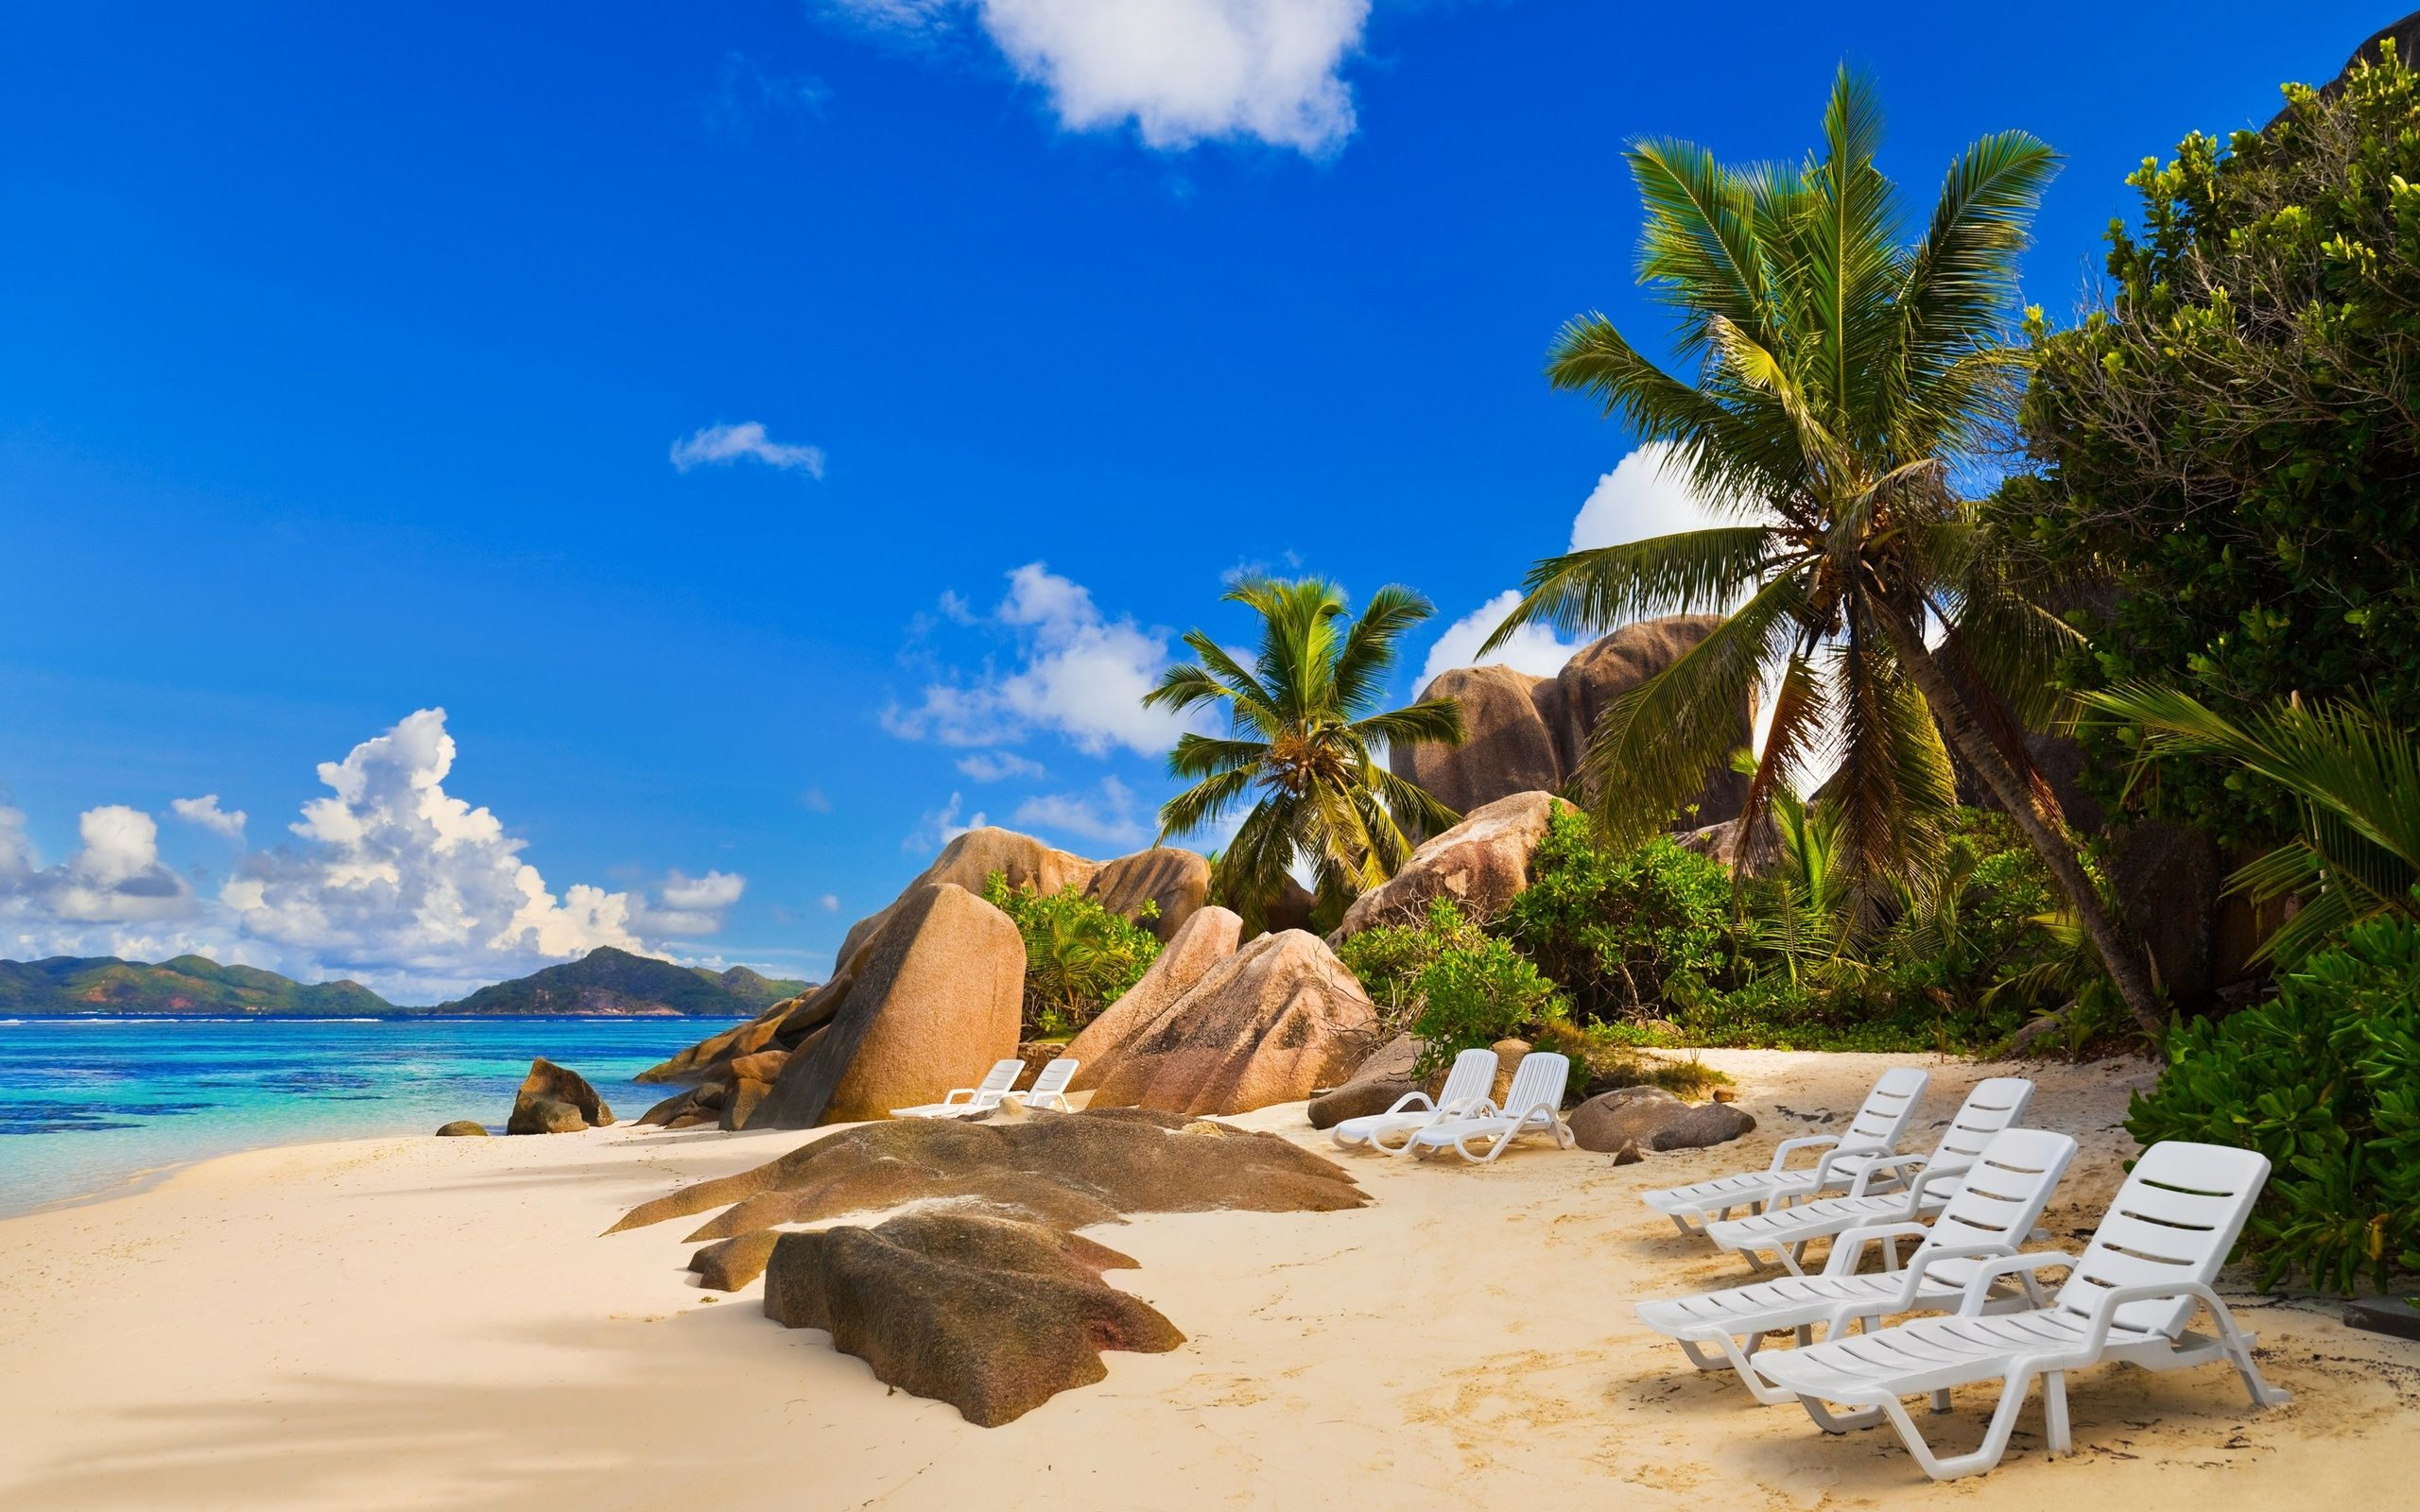 Chairs on exotic beach -. Beautiful Water Scenes Wallpapers . Awsome Landscape Wallpapers. HD Wallpaper Download for iPad and iPhone Widescreen 2160p UHD 4K